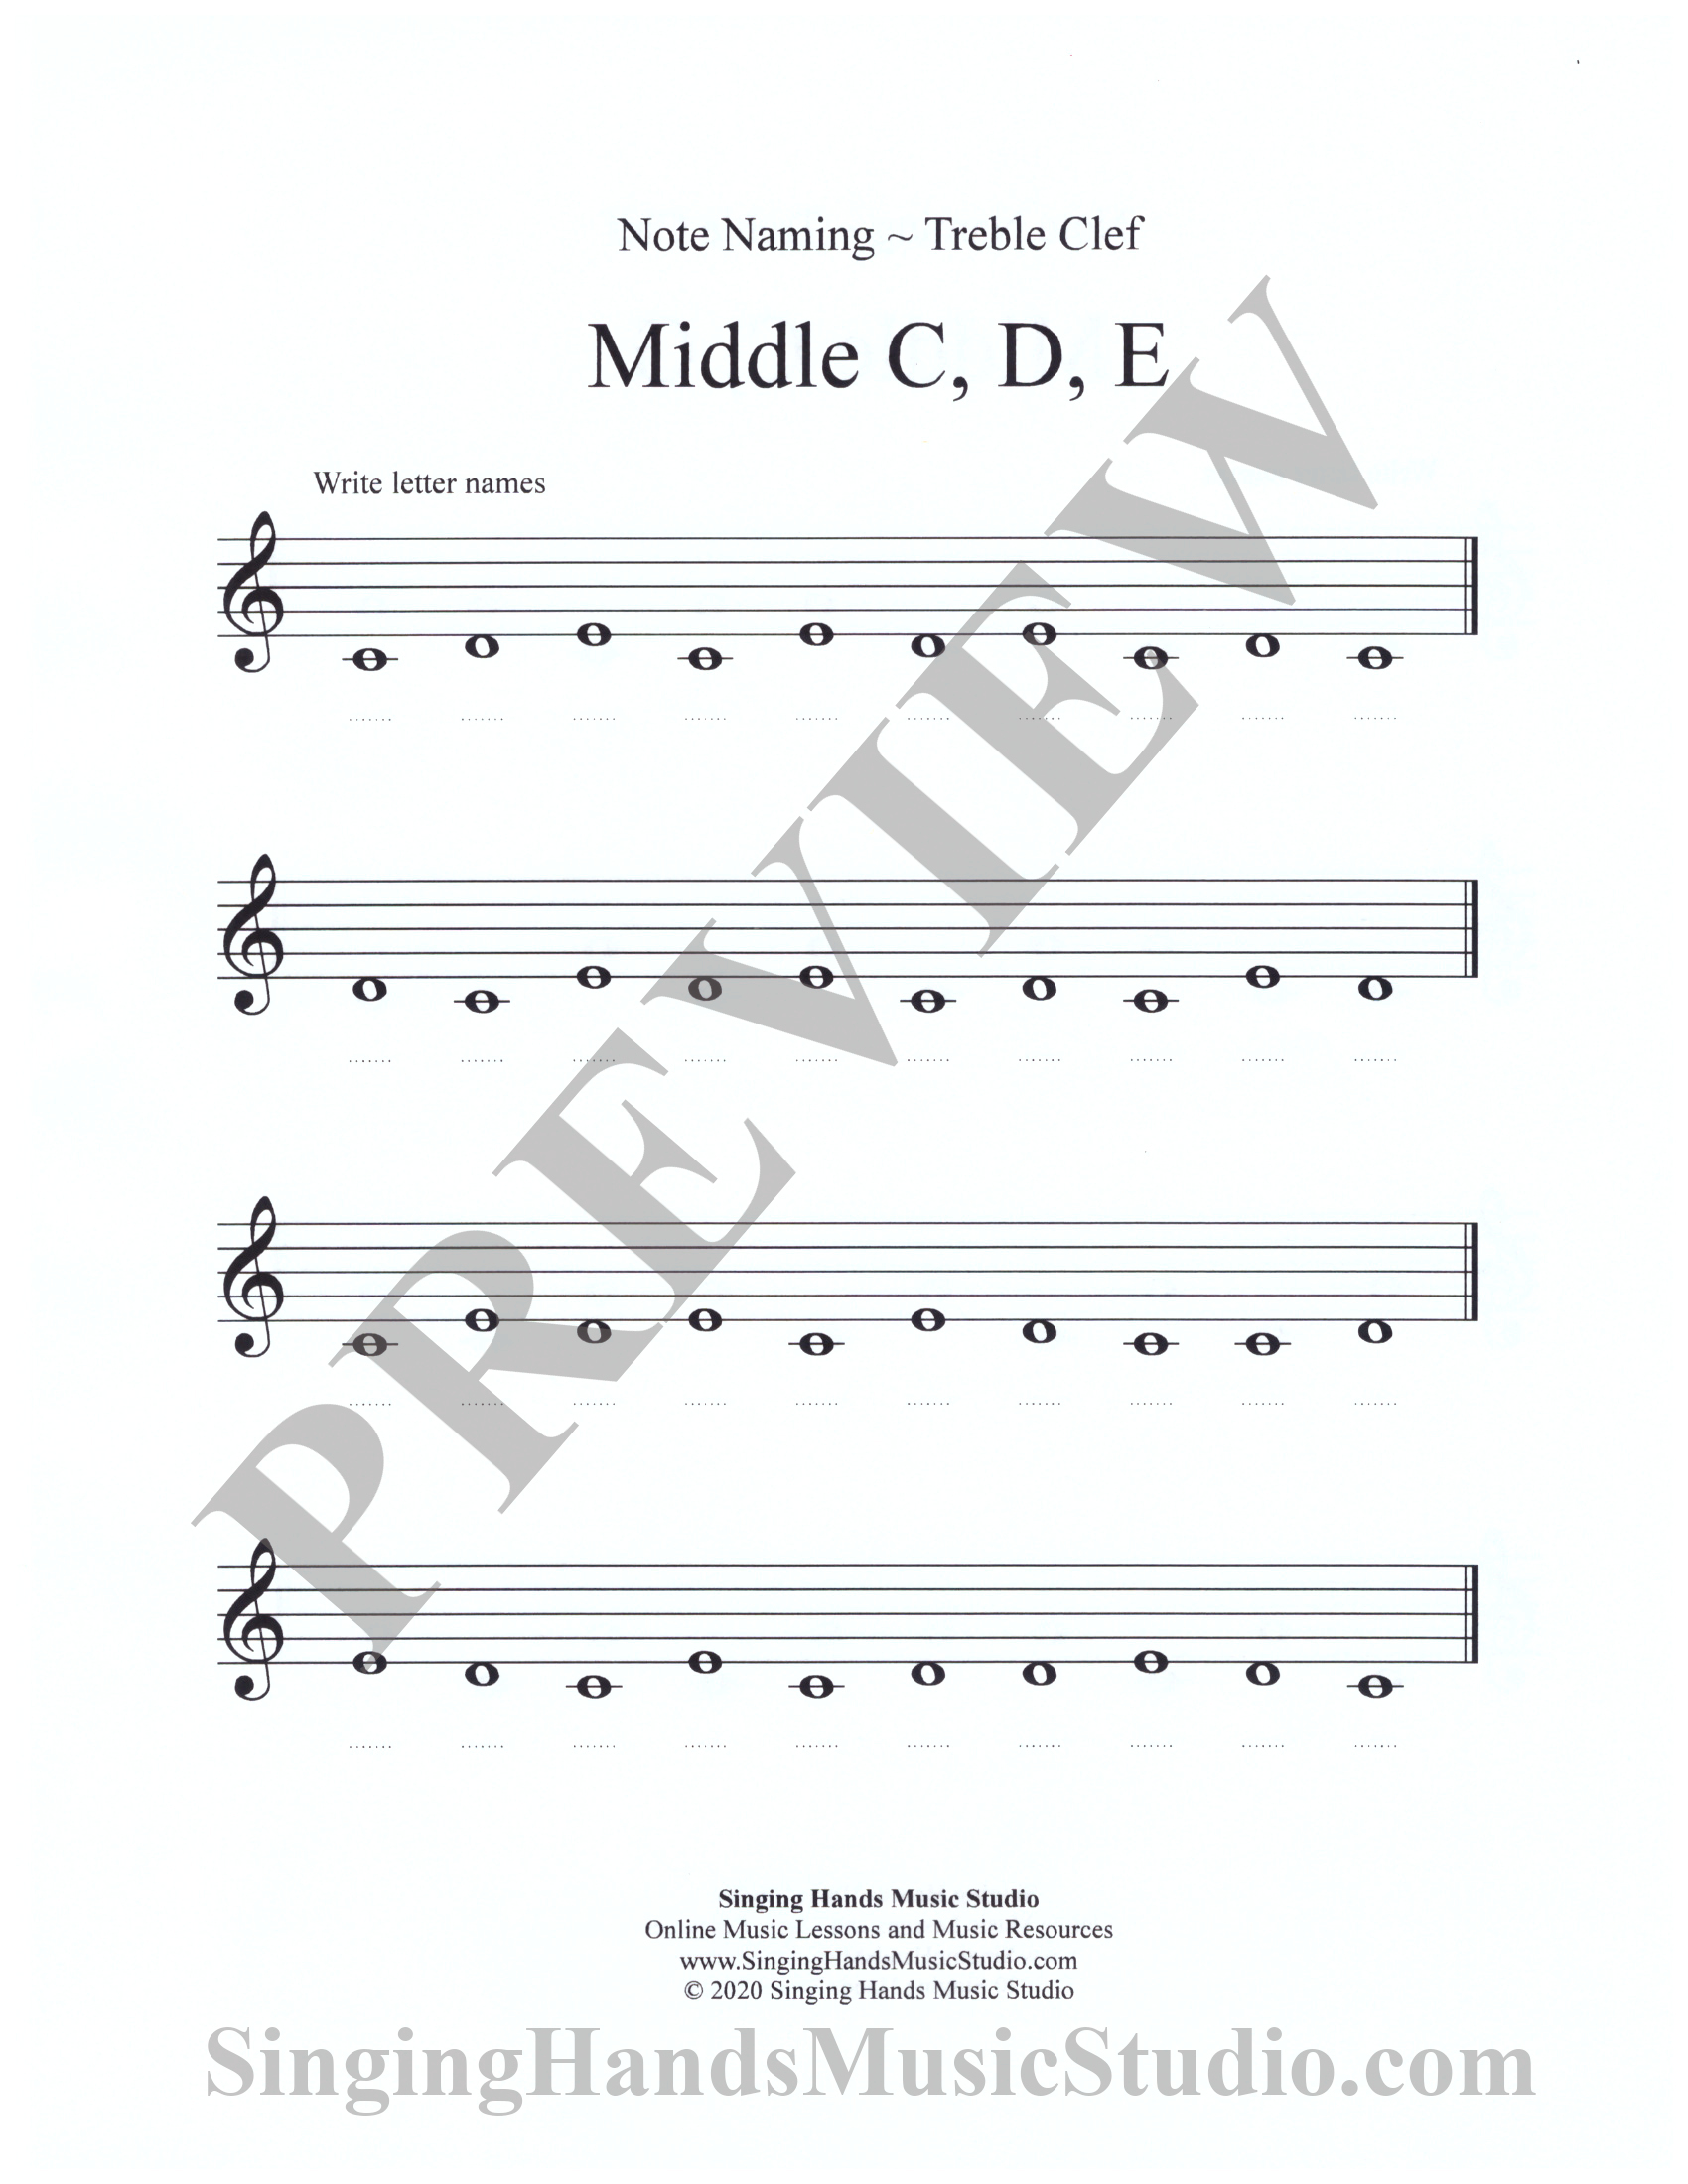 Note Naming Treble Clef: Middle C – G – Singing Hands Music Studio Pertaining To Treble Clef Notes Worksheet